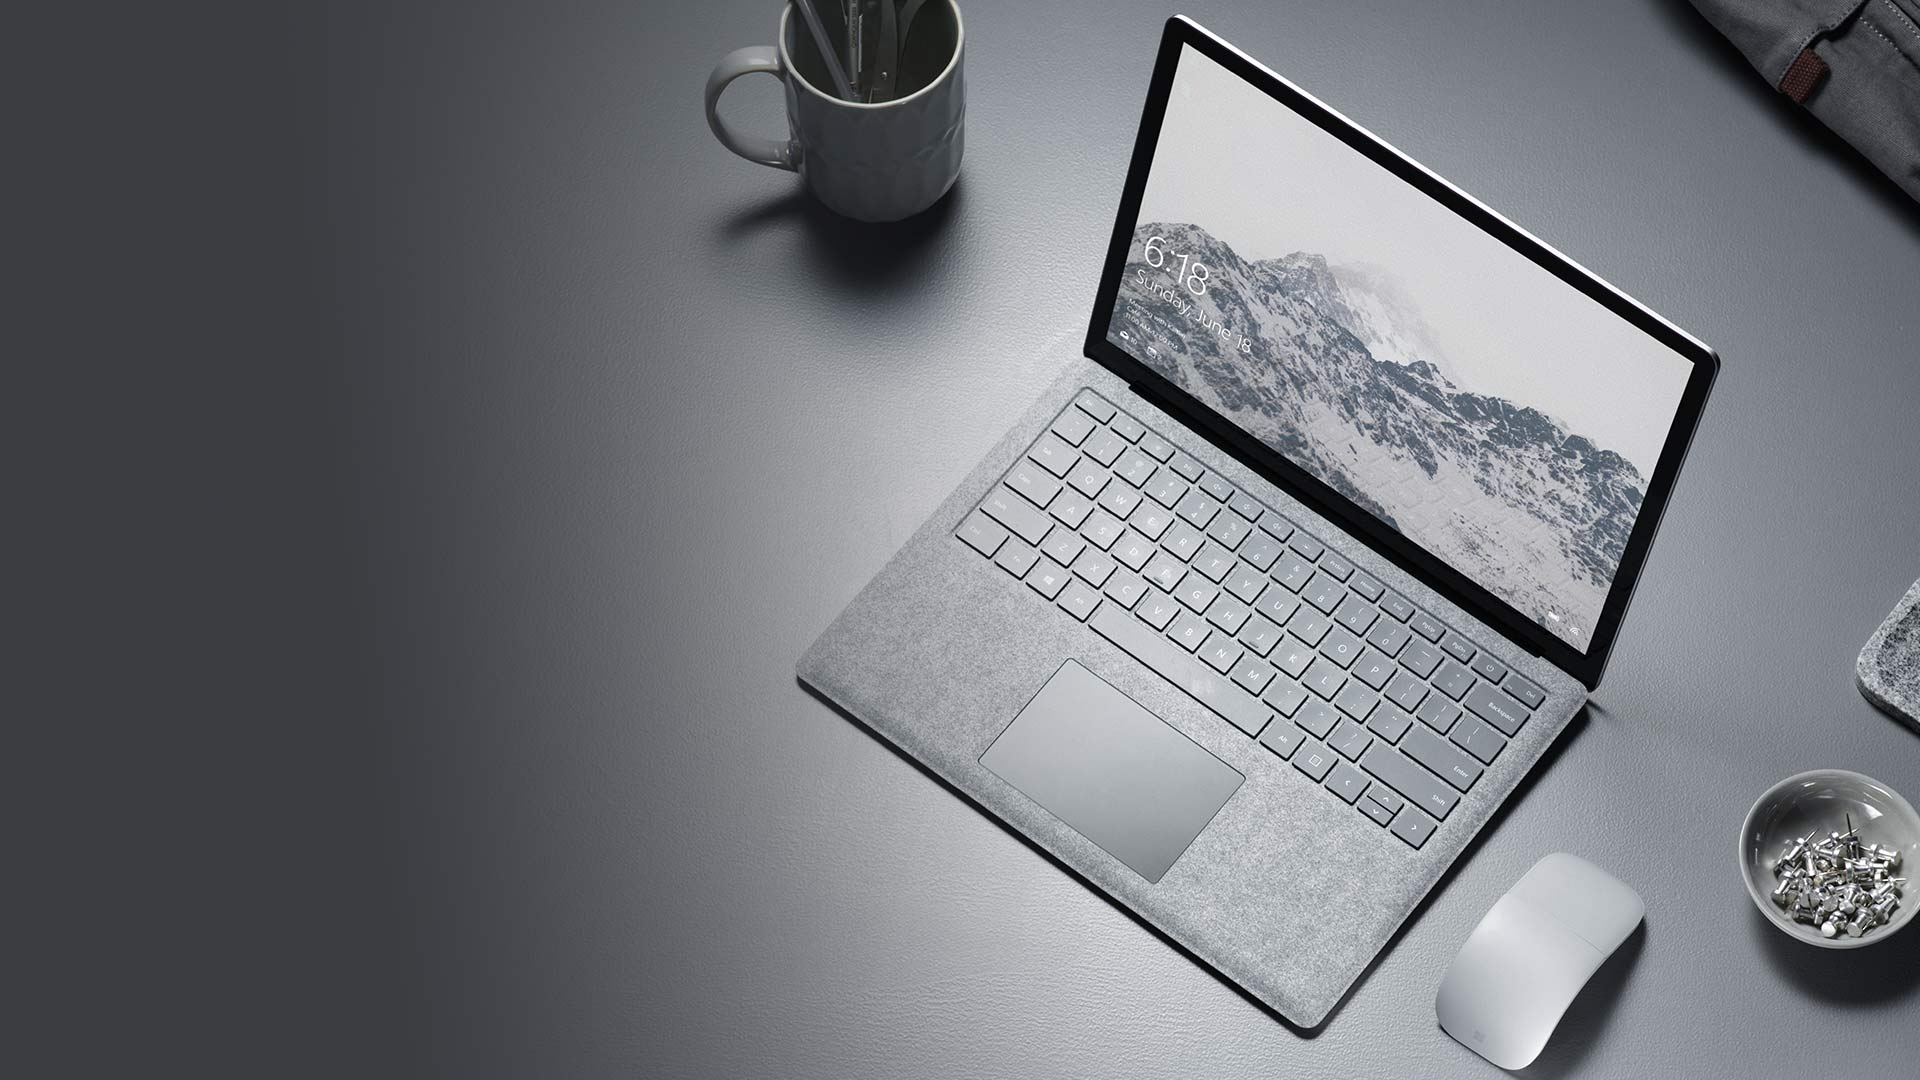 Surface Laptop in tabletop setting